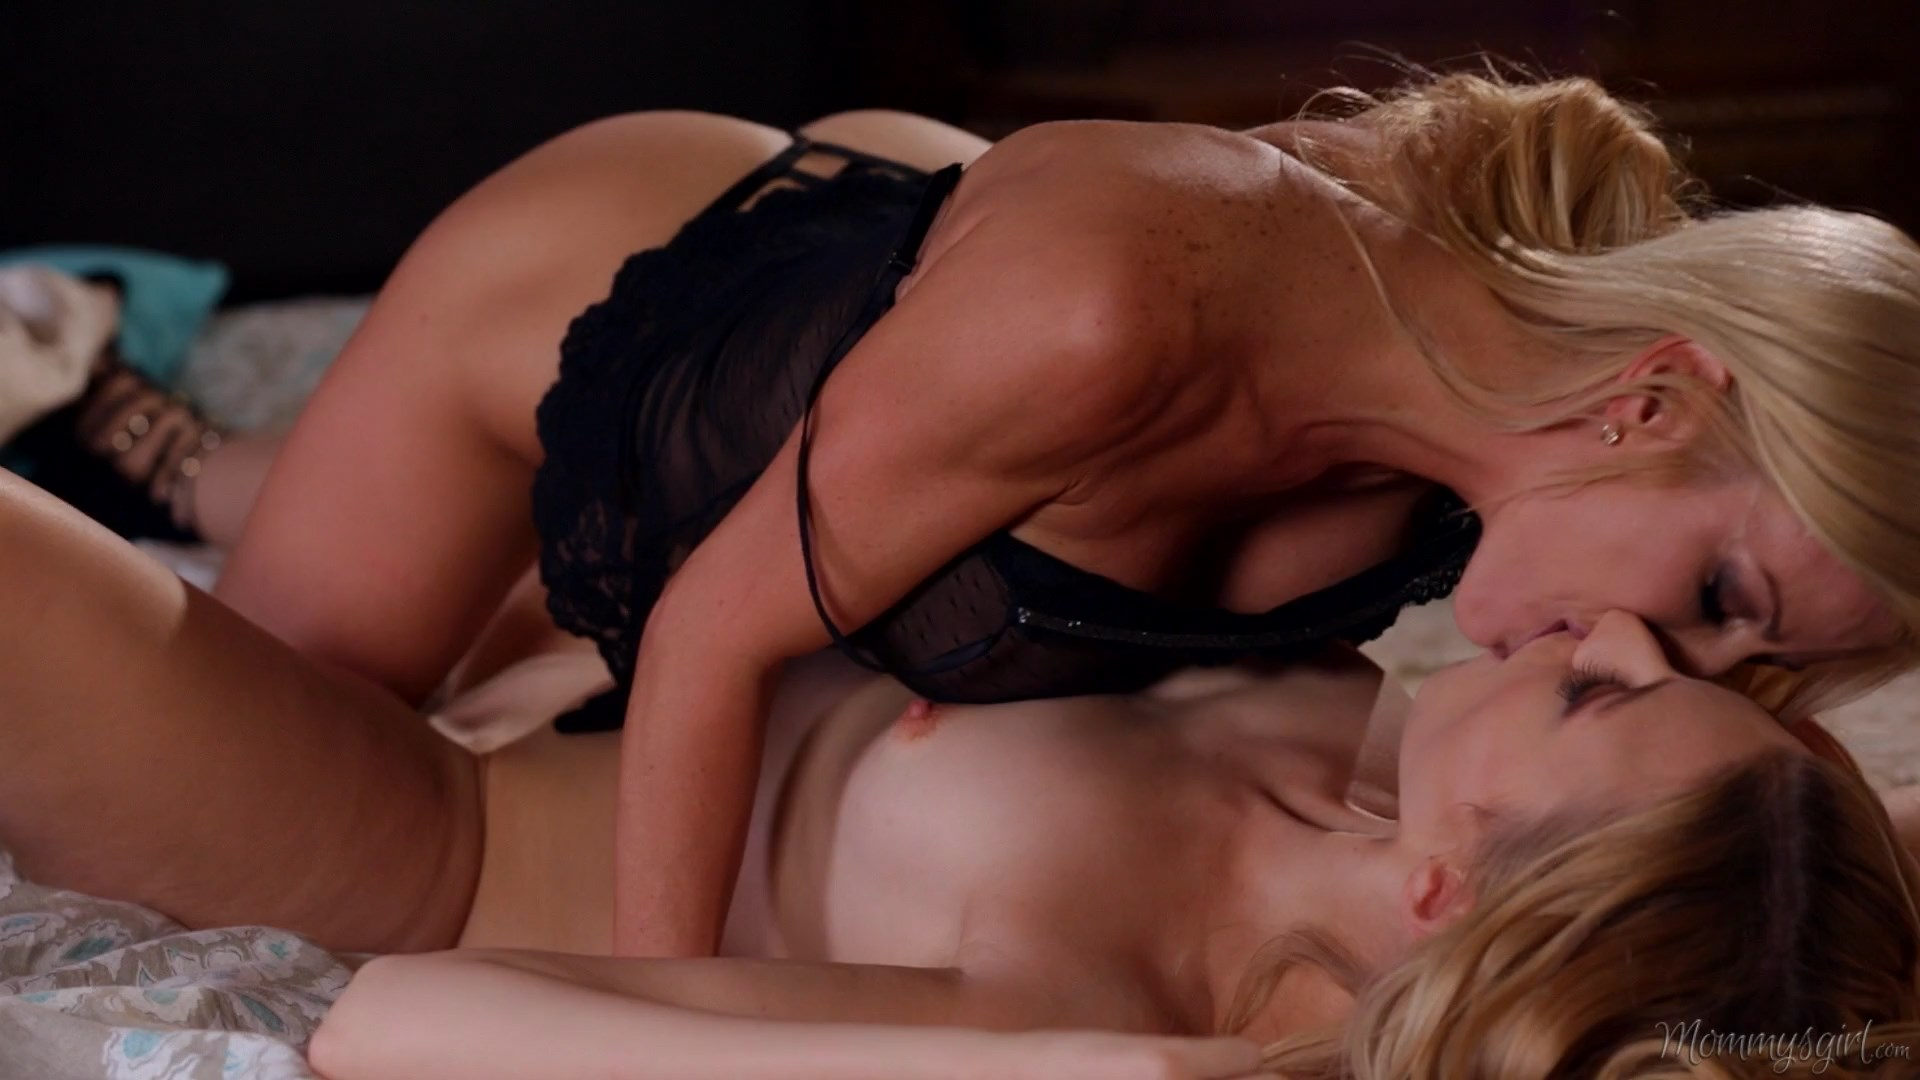 Mommy's Girl - Managing My Daughter - Alexa Grace & Alexis Fawx